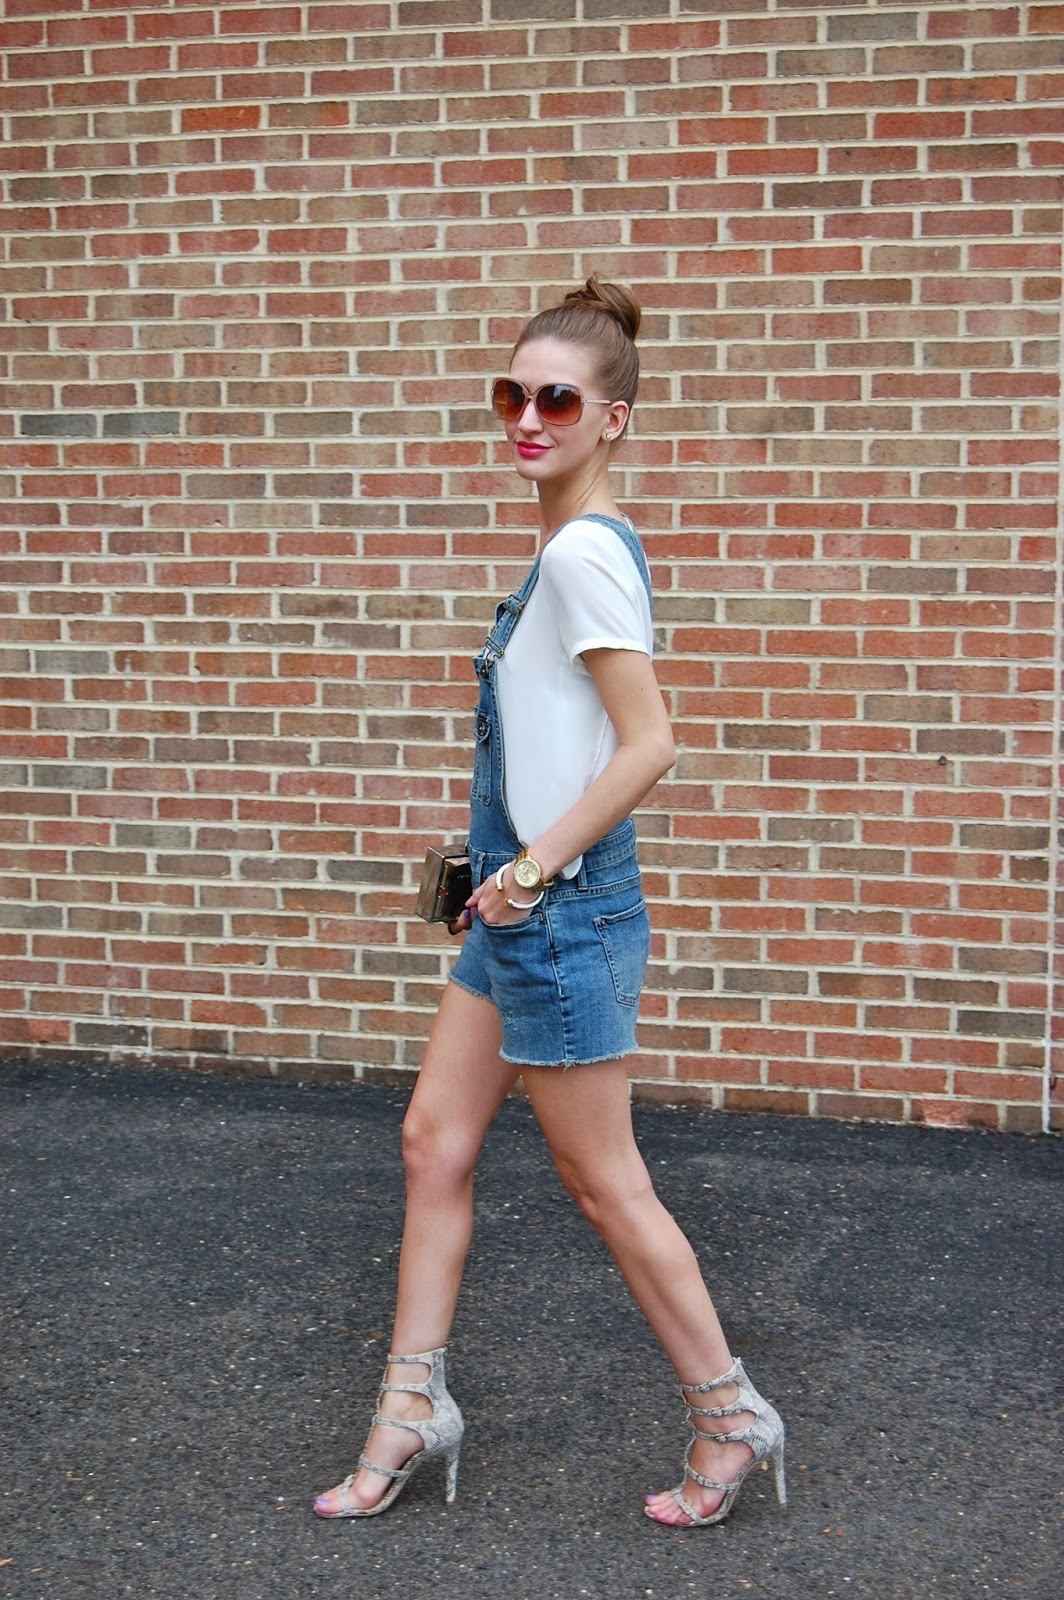 Wearing Target Mossimo denim overall shorts, Bcbgeneration Manci gladiator heels, Bcbg Maxazria Lucite clutch, casual overall look